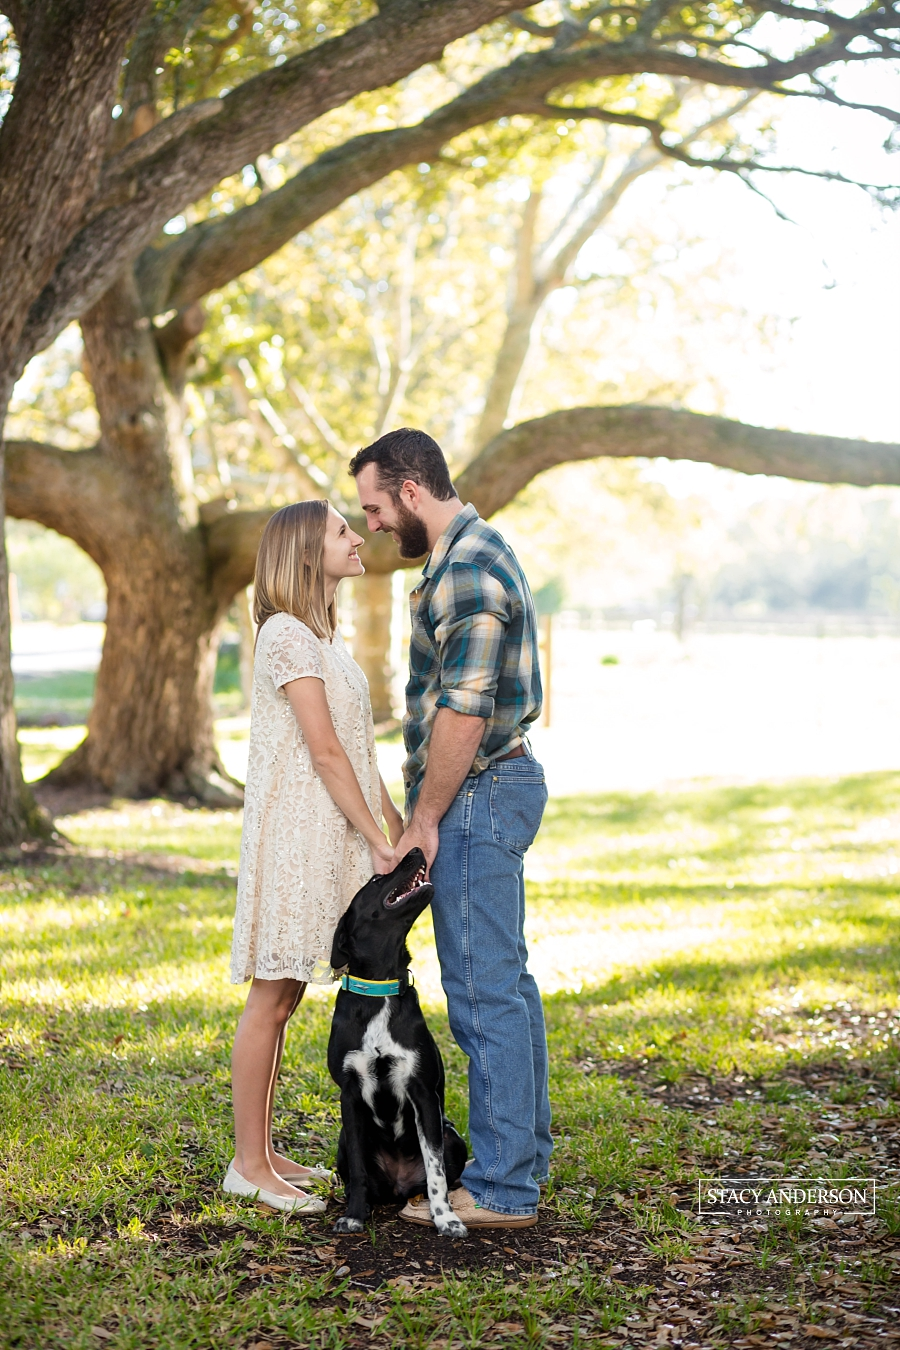 stacy-anderson-photography-alvin-wedding-photographer_0017